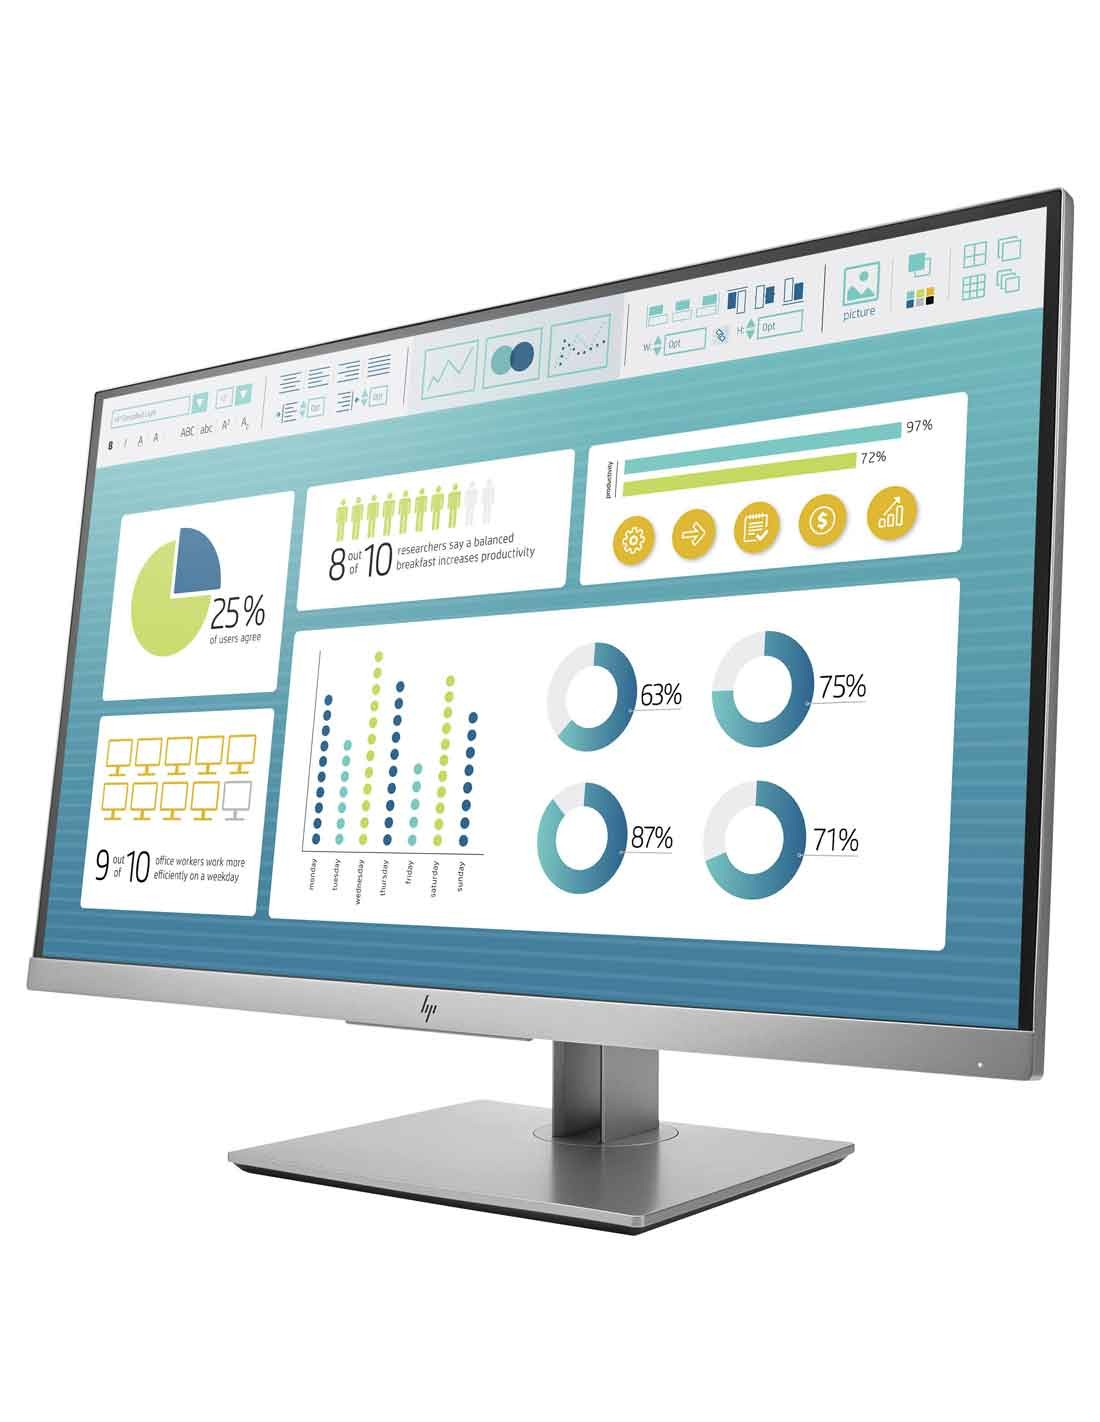 HP EliteDisplay E273 27-inch Monitor images and photos